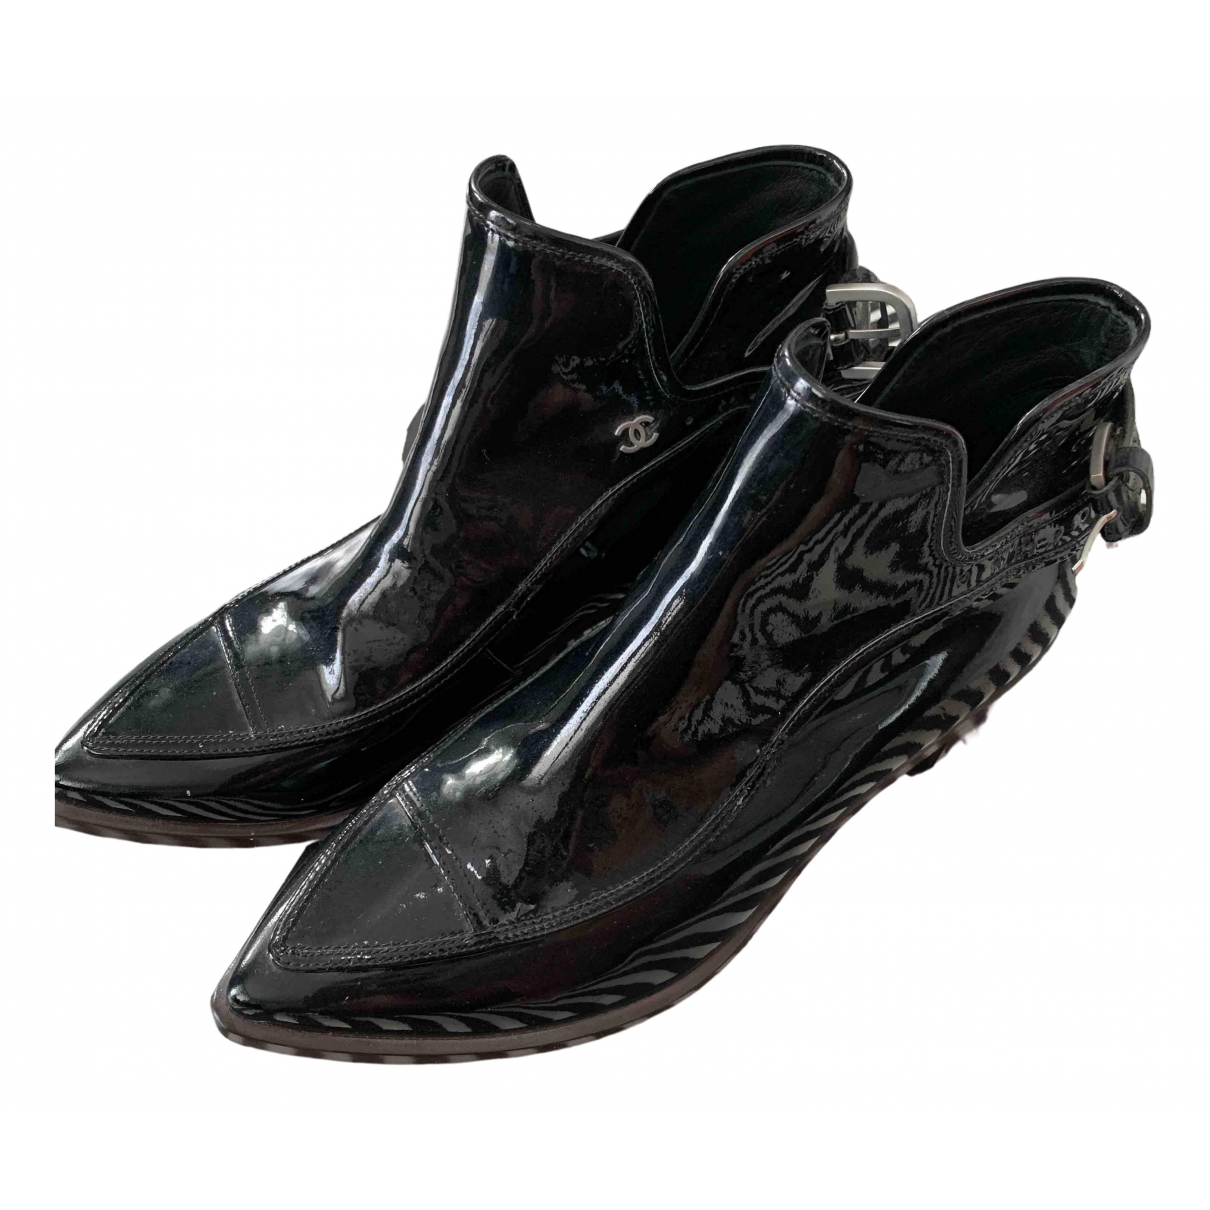 Chanel \N Black Patent leather Ankle boots for Women 37.5 EU